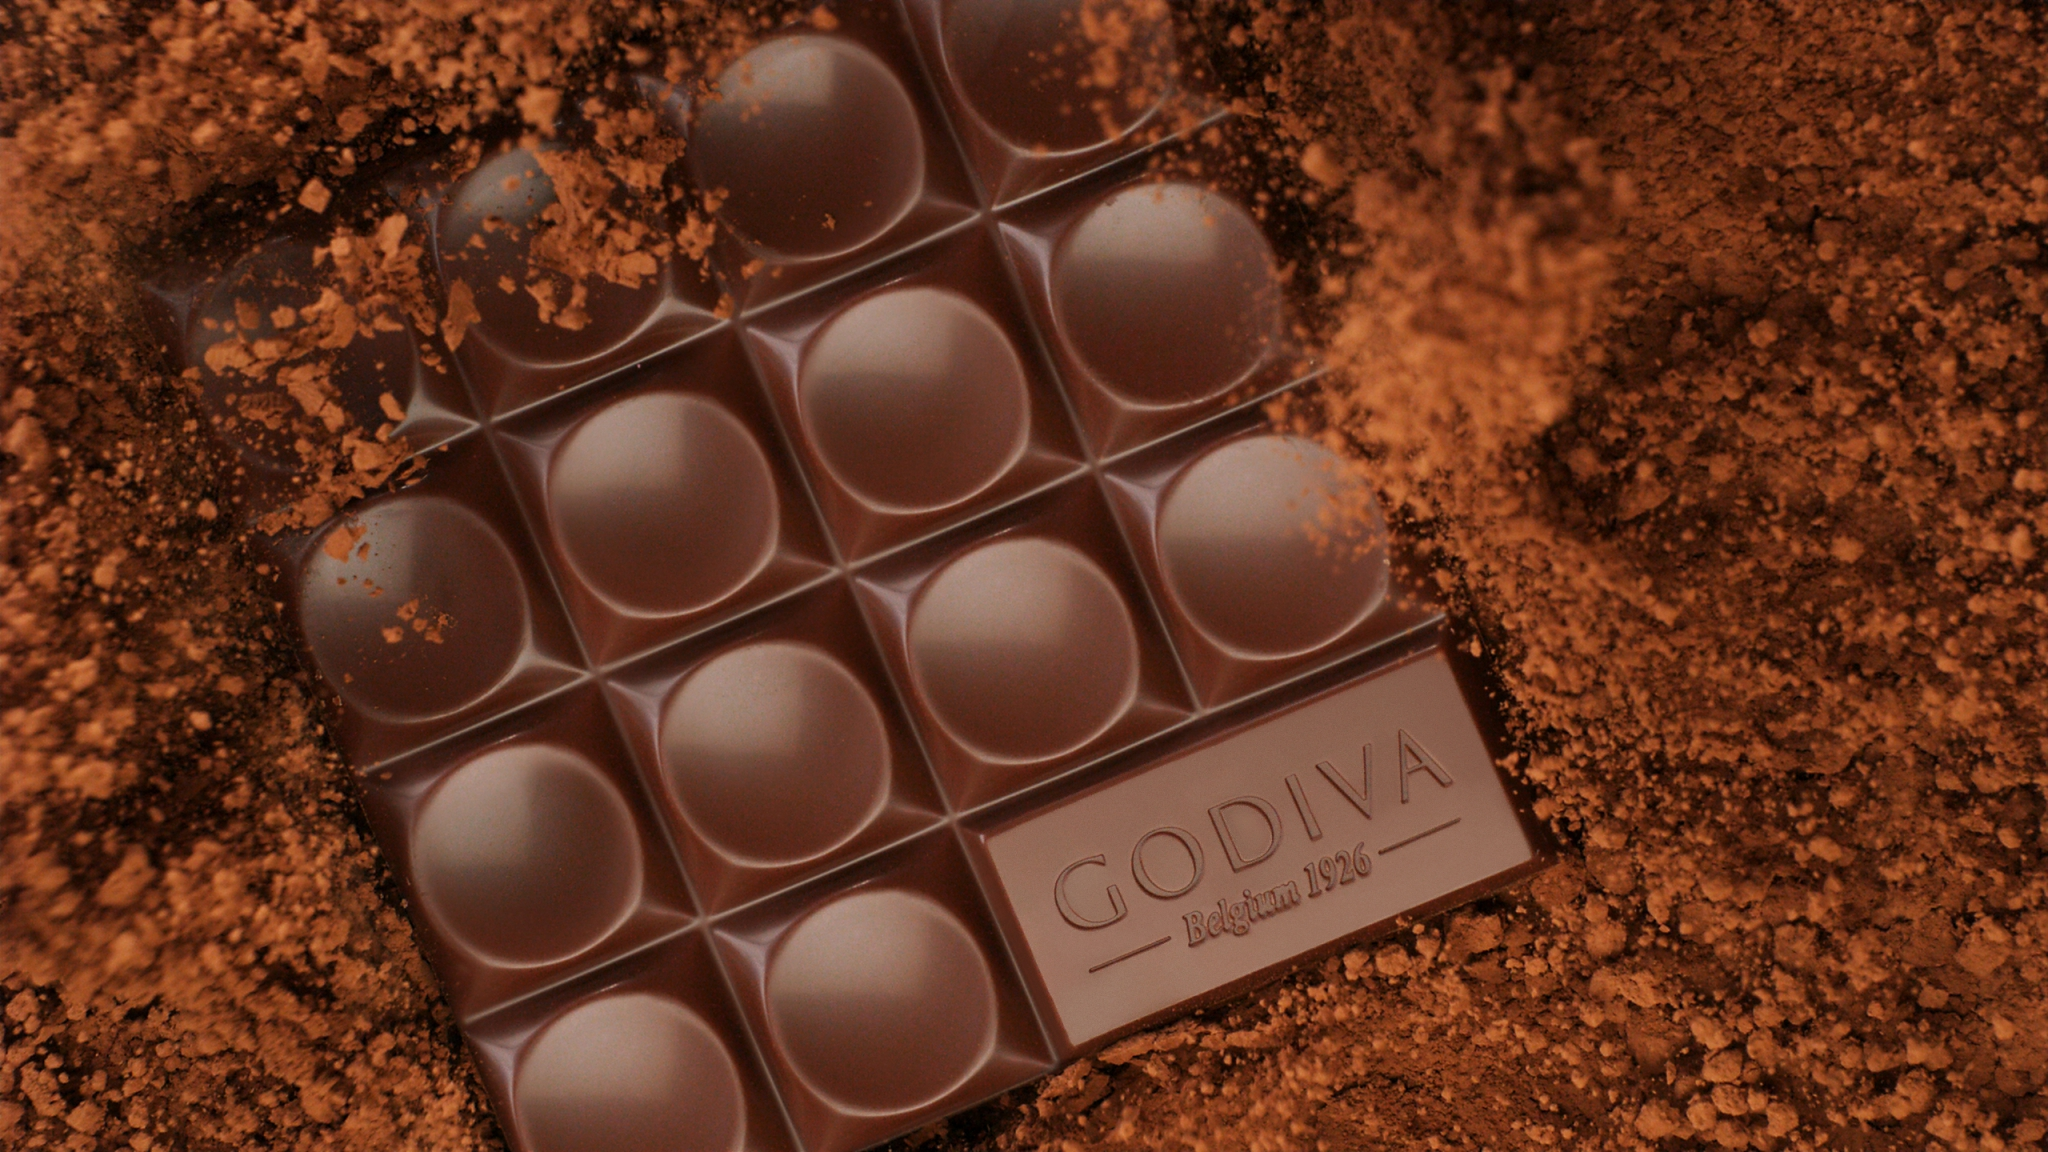 Godiva chocolate video directed by Lisa Shin